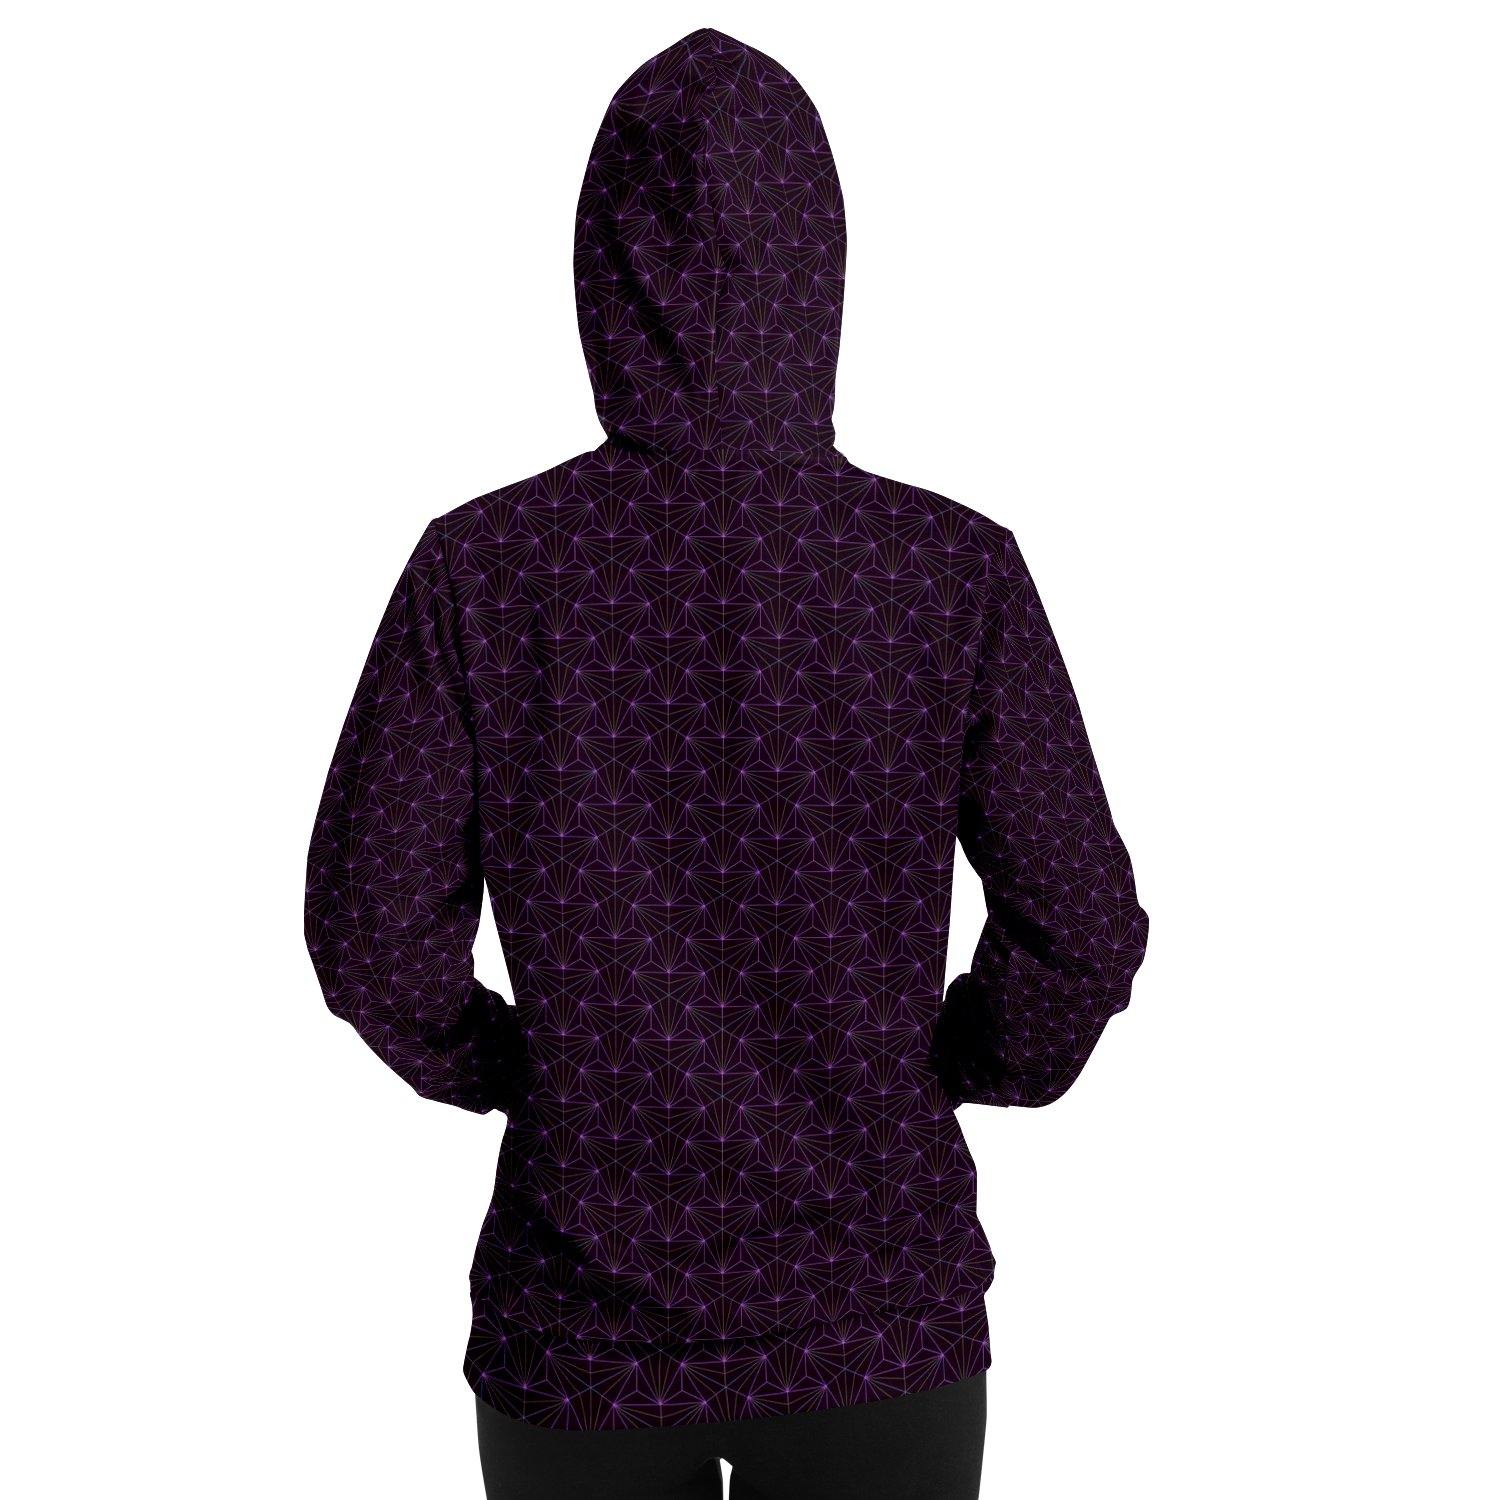 Amethyst Sacred Connections Premium Pullover Hoodie - Manifestie